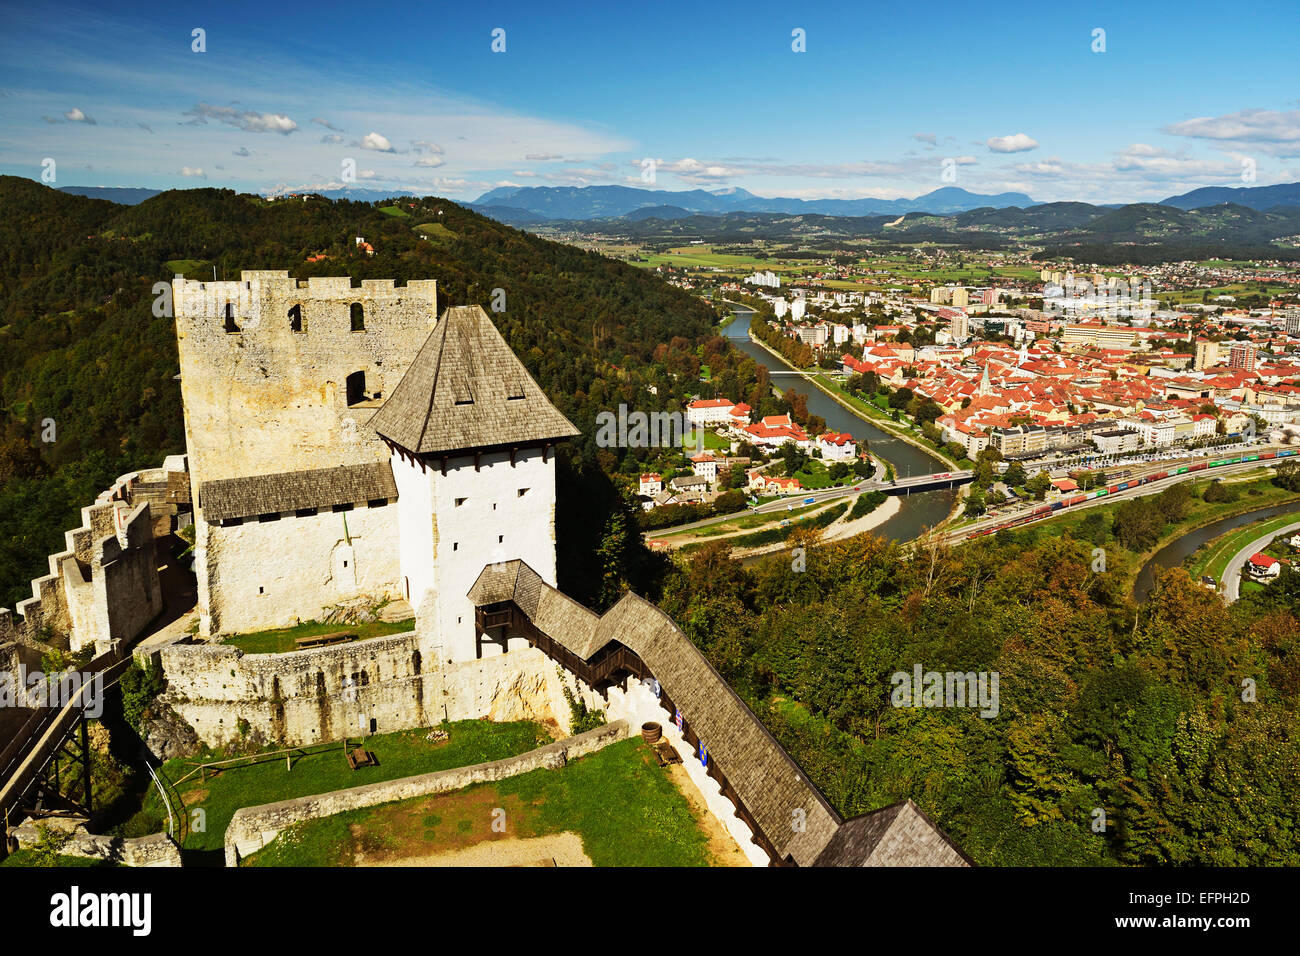 View of Celje Castle and Celje, Slovenia, Europe - Stock Image